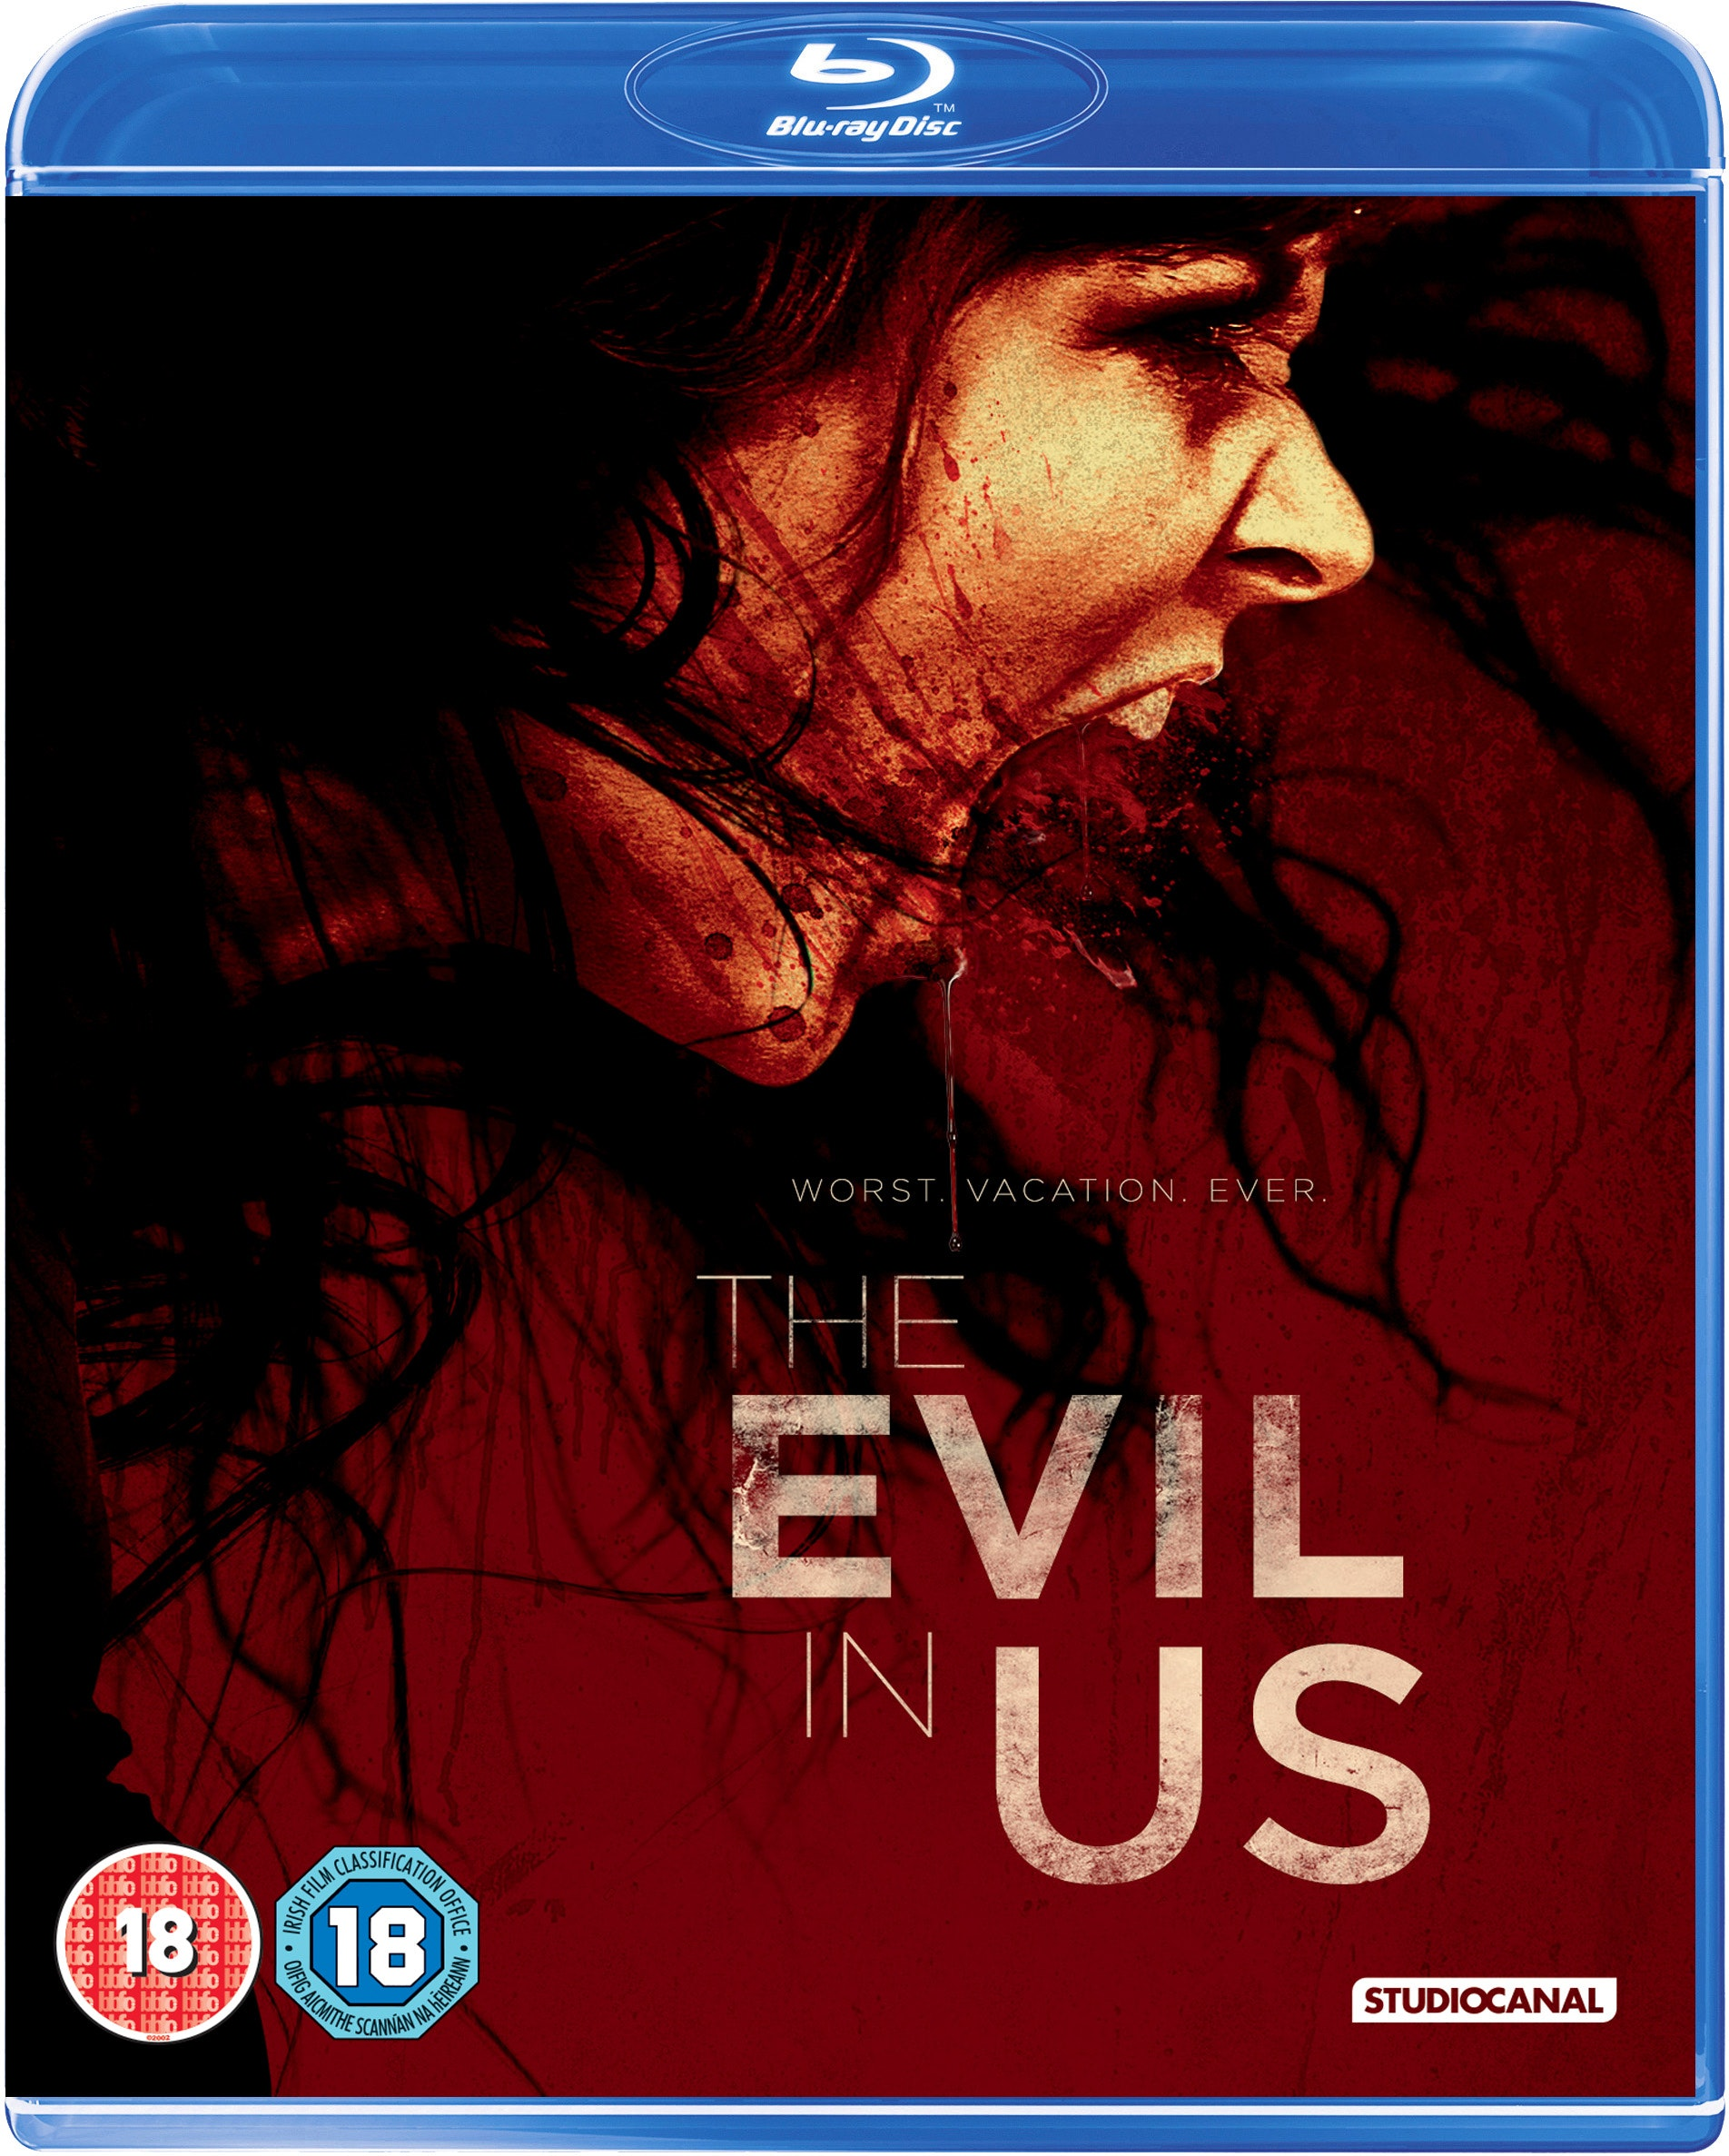 Theevilinusbdret2d dvd competition